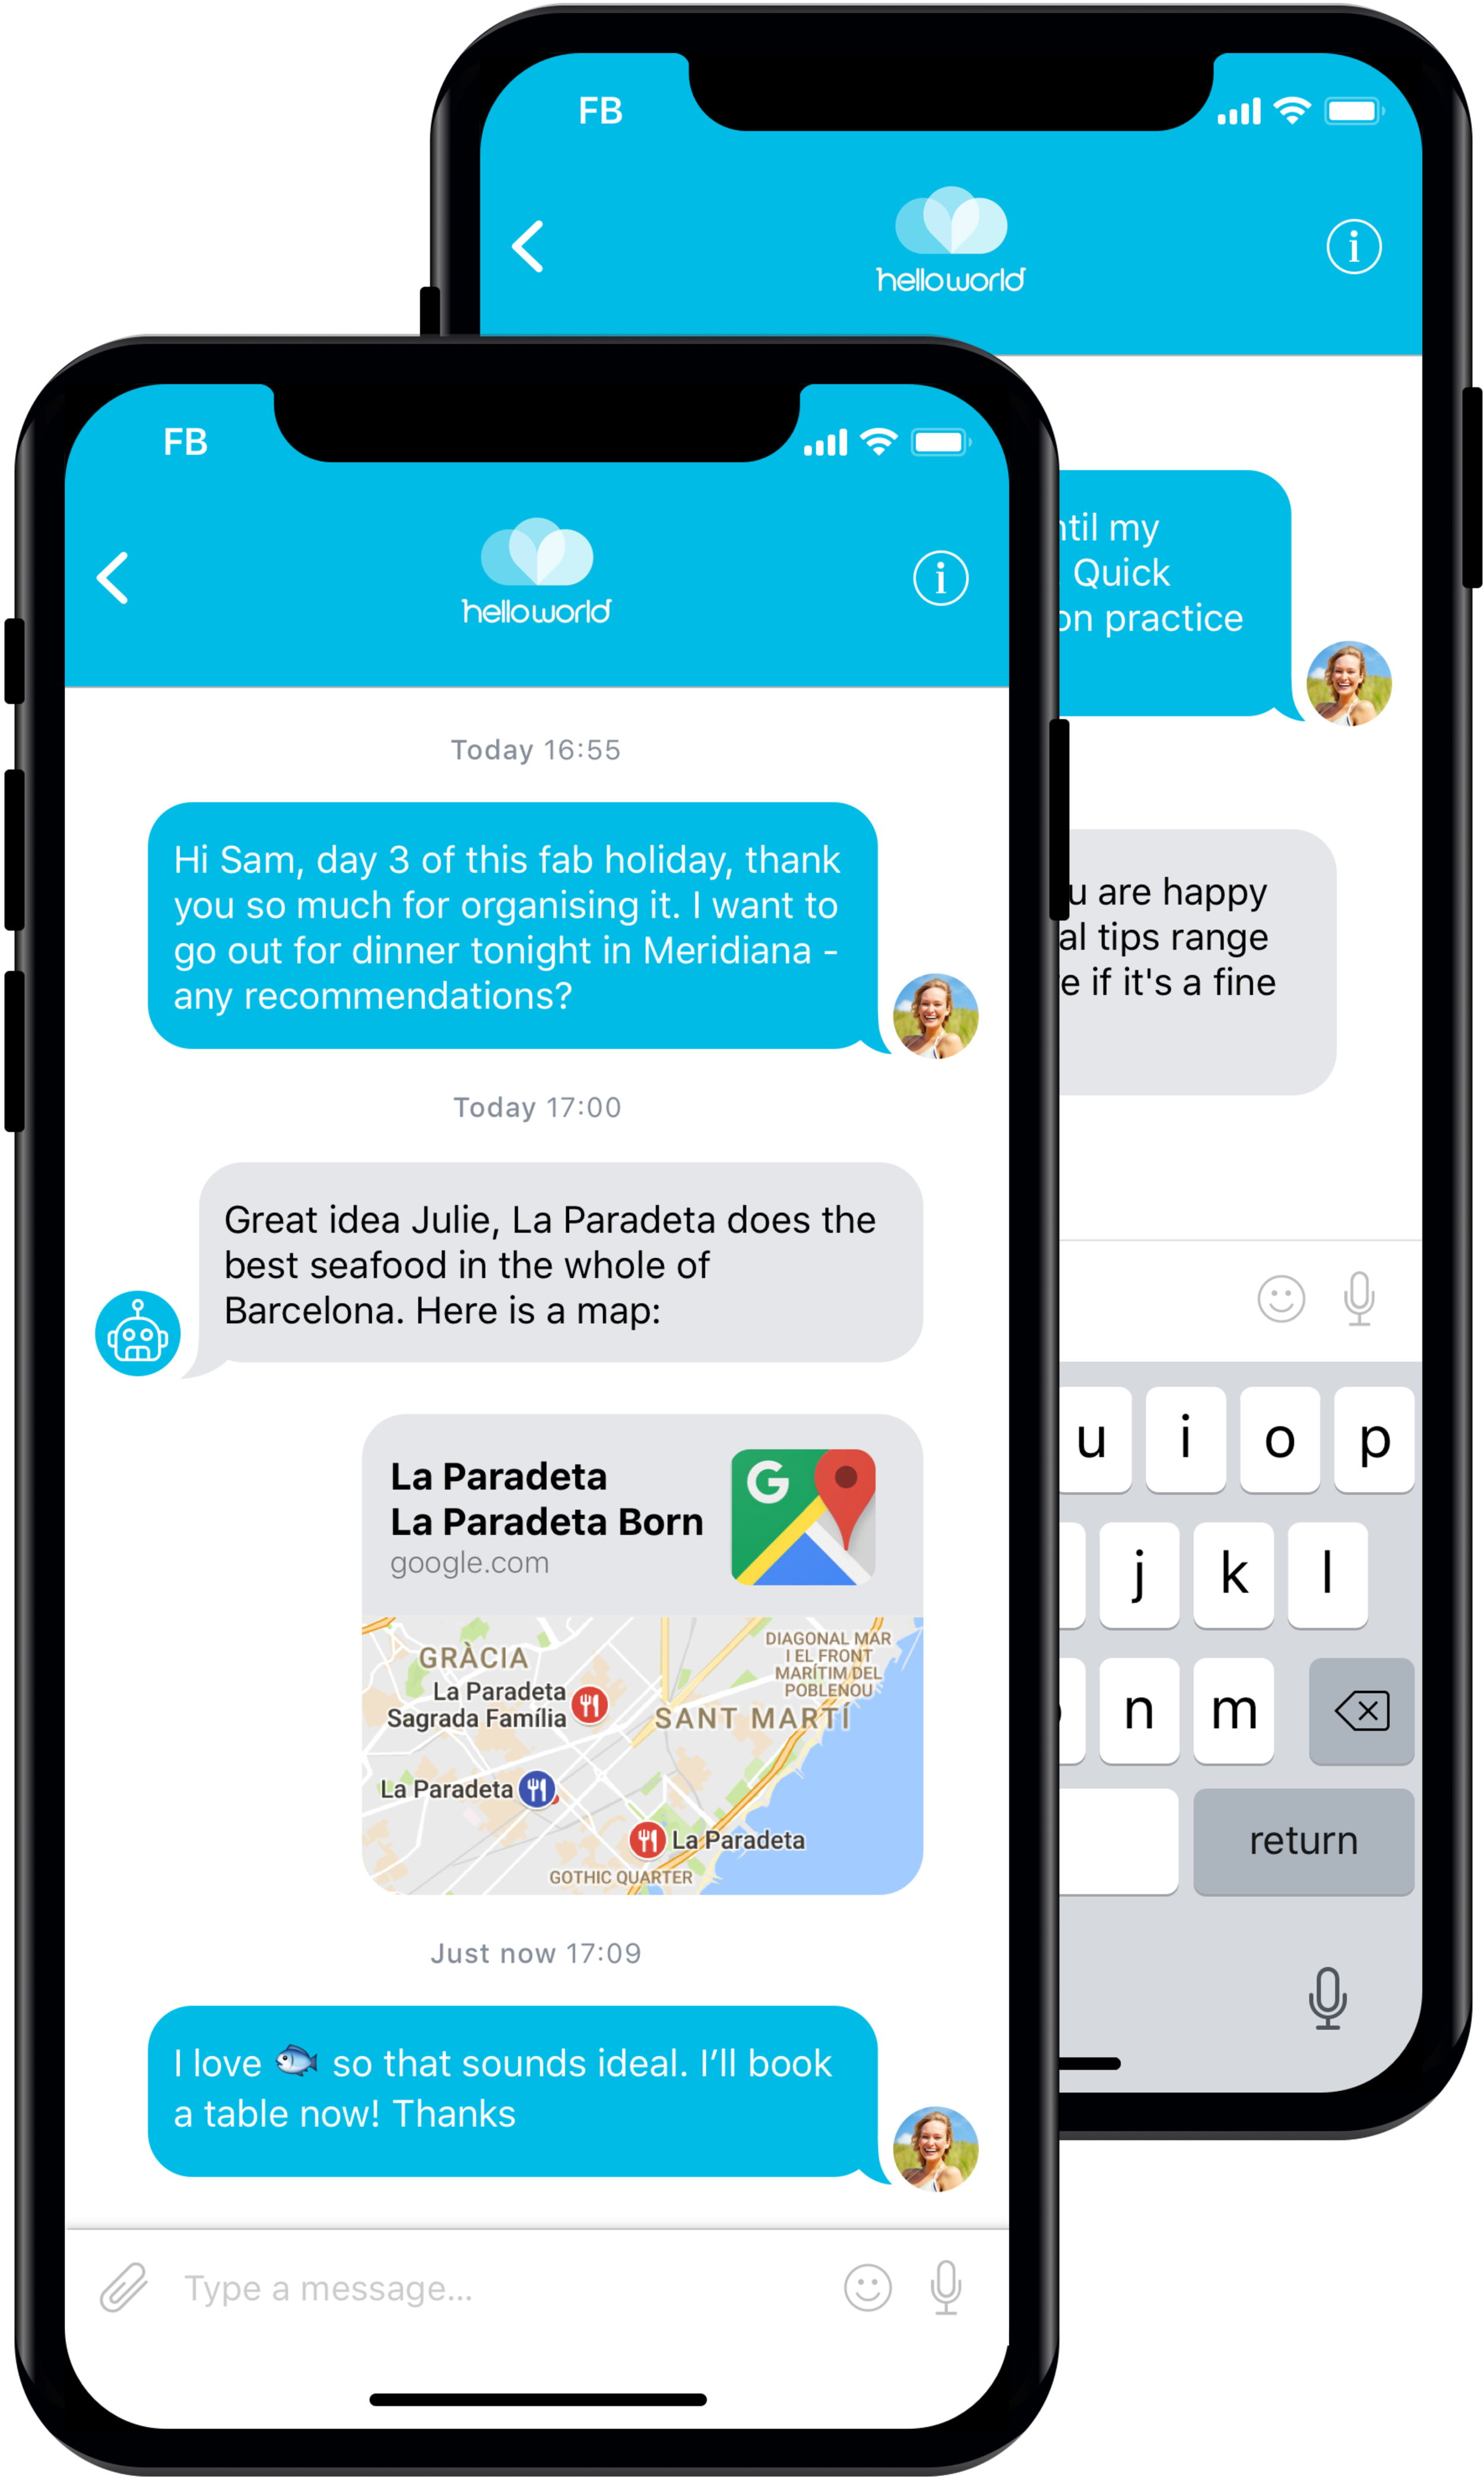 Clever Bot - A virtual assistant within Helloworld's app that helps travellers by making their travel (instead of flight) experience more intuitive and simple.